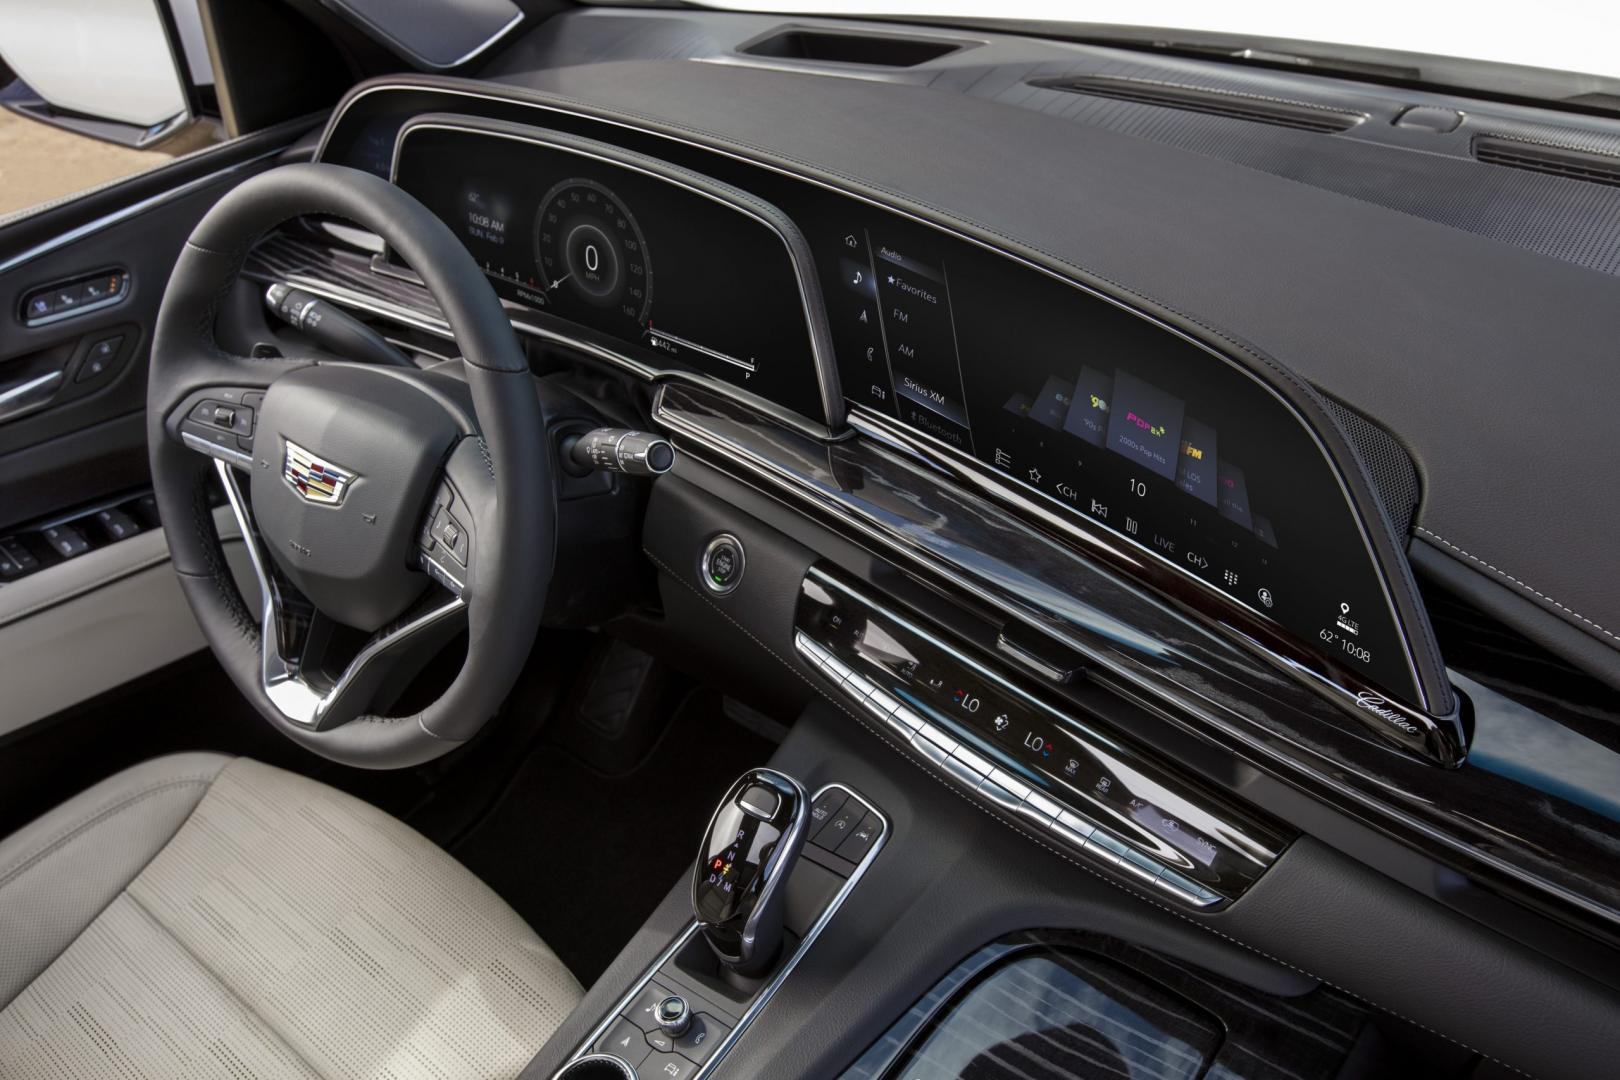 Cadillac Escalade 2021 dashboard interieur scherm schermen display oled